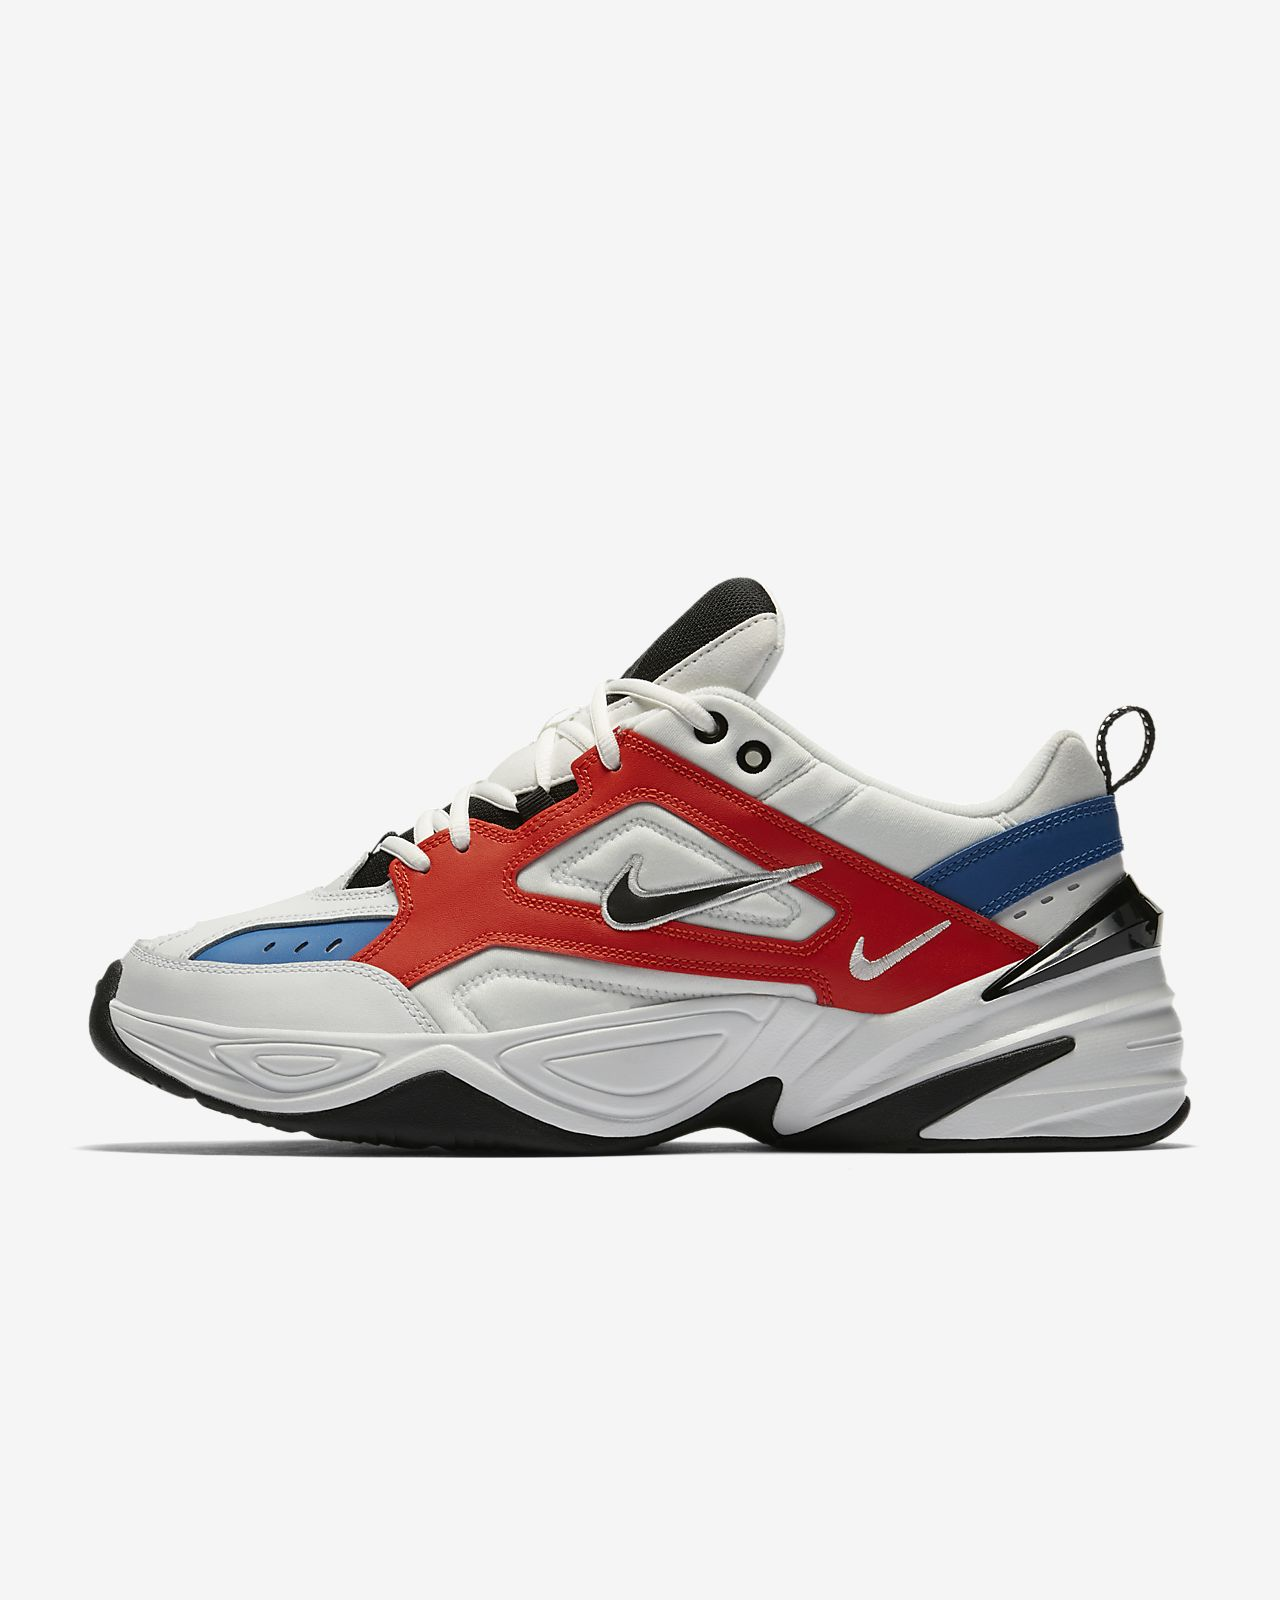 chaussure nike customiser homme chine